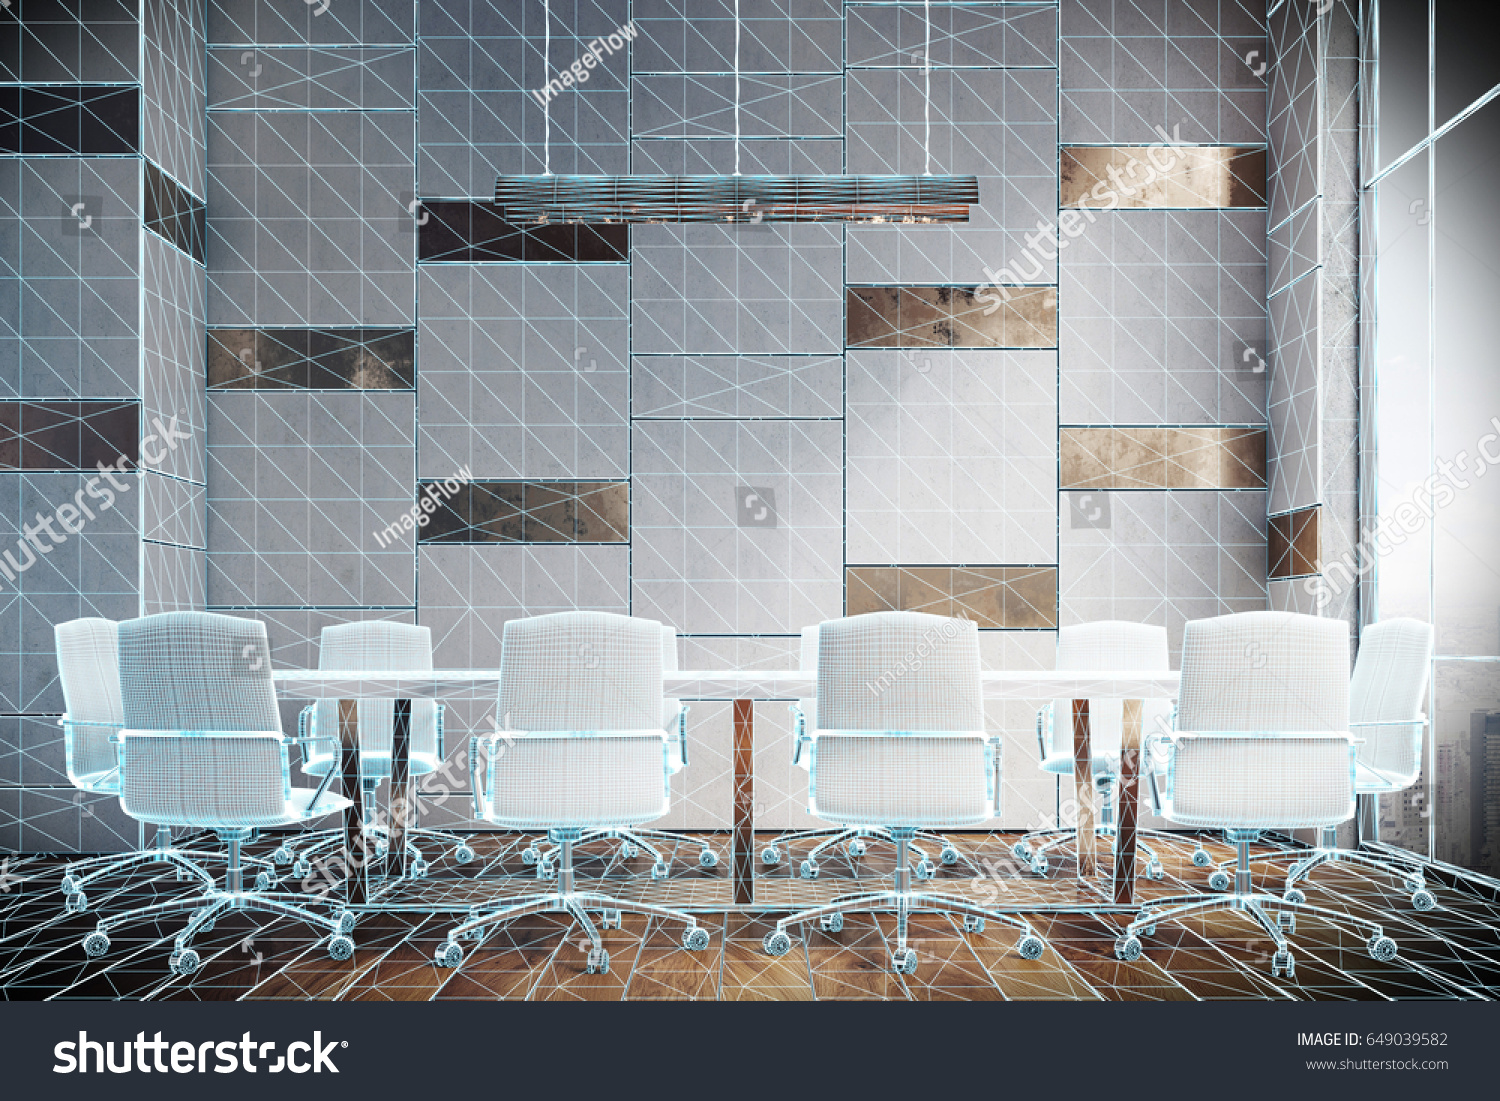 Virtual Meeting Room Interior Wooden White Stock Illustration ...